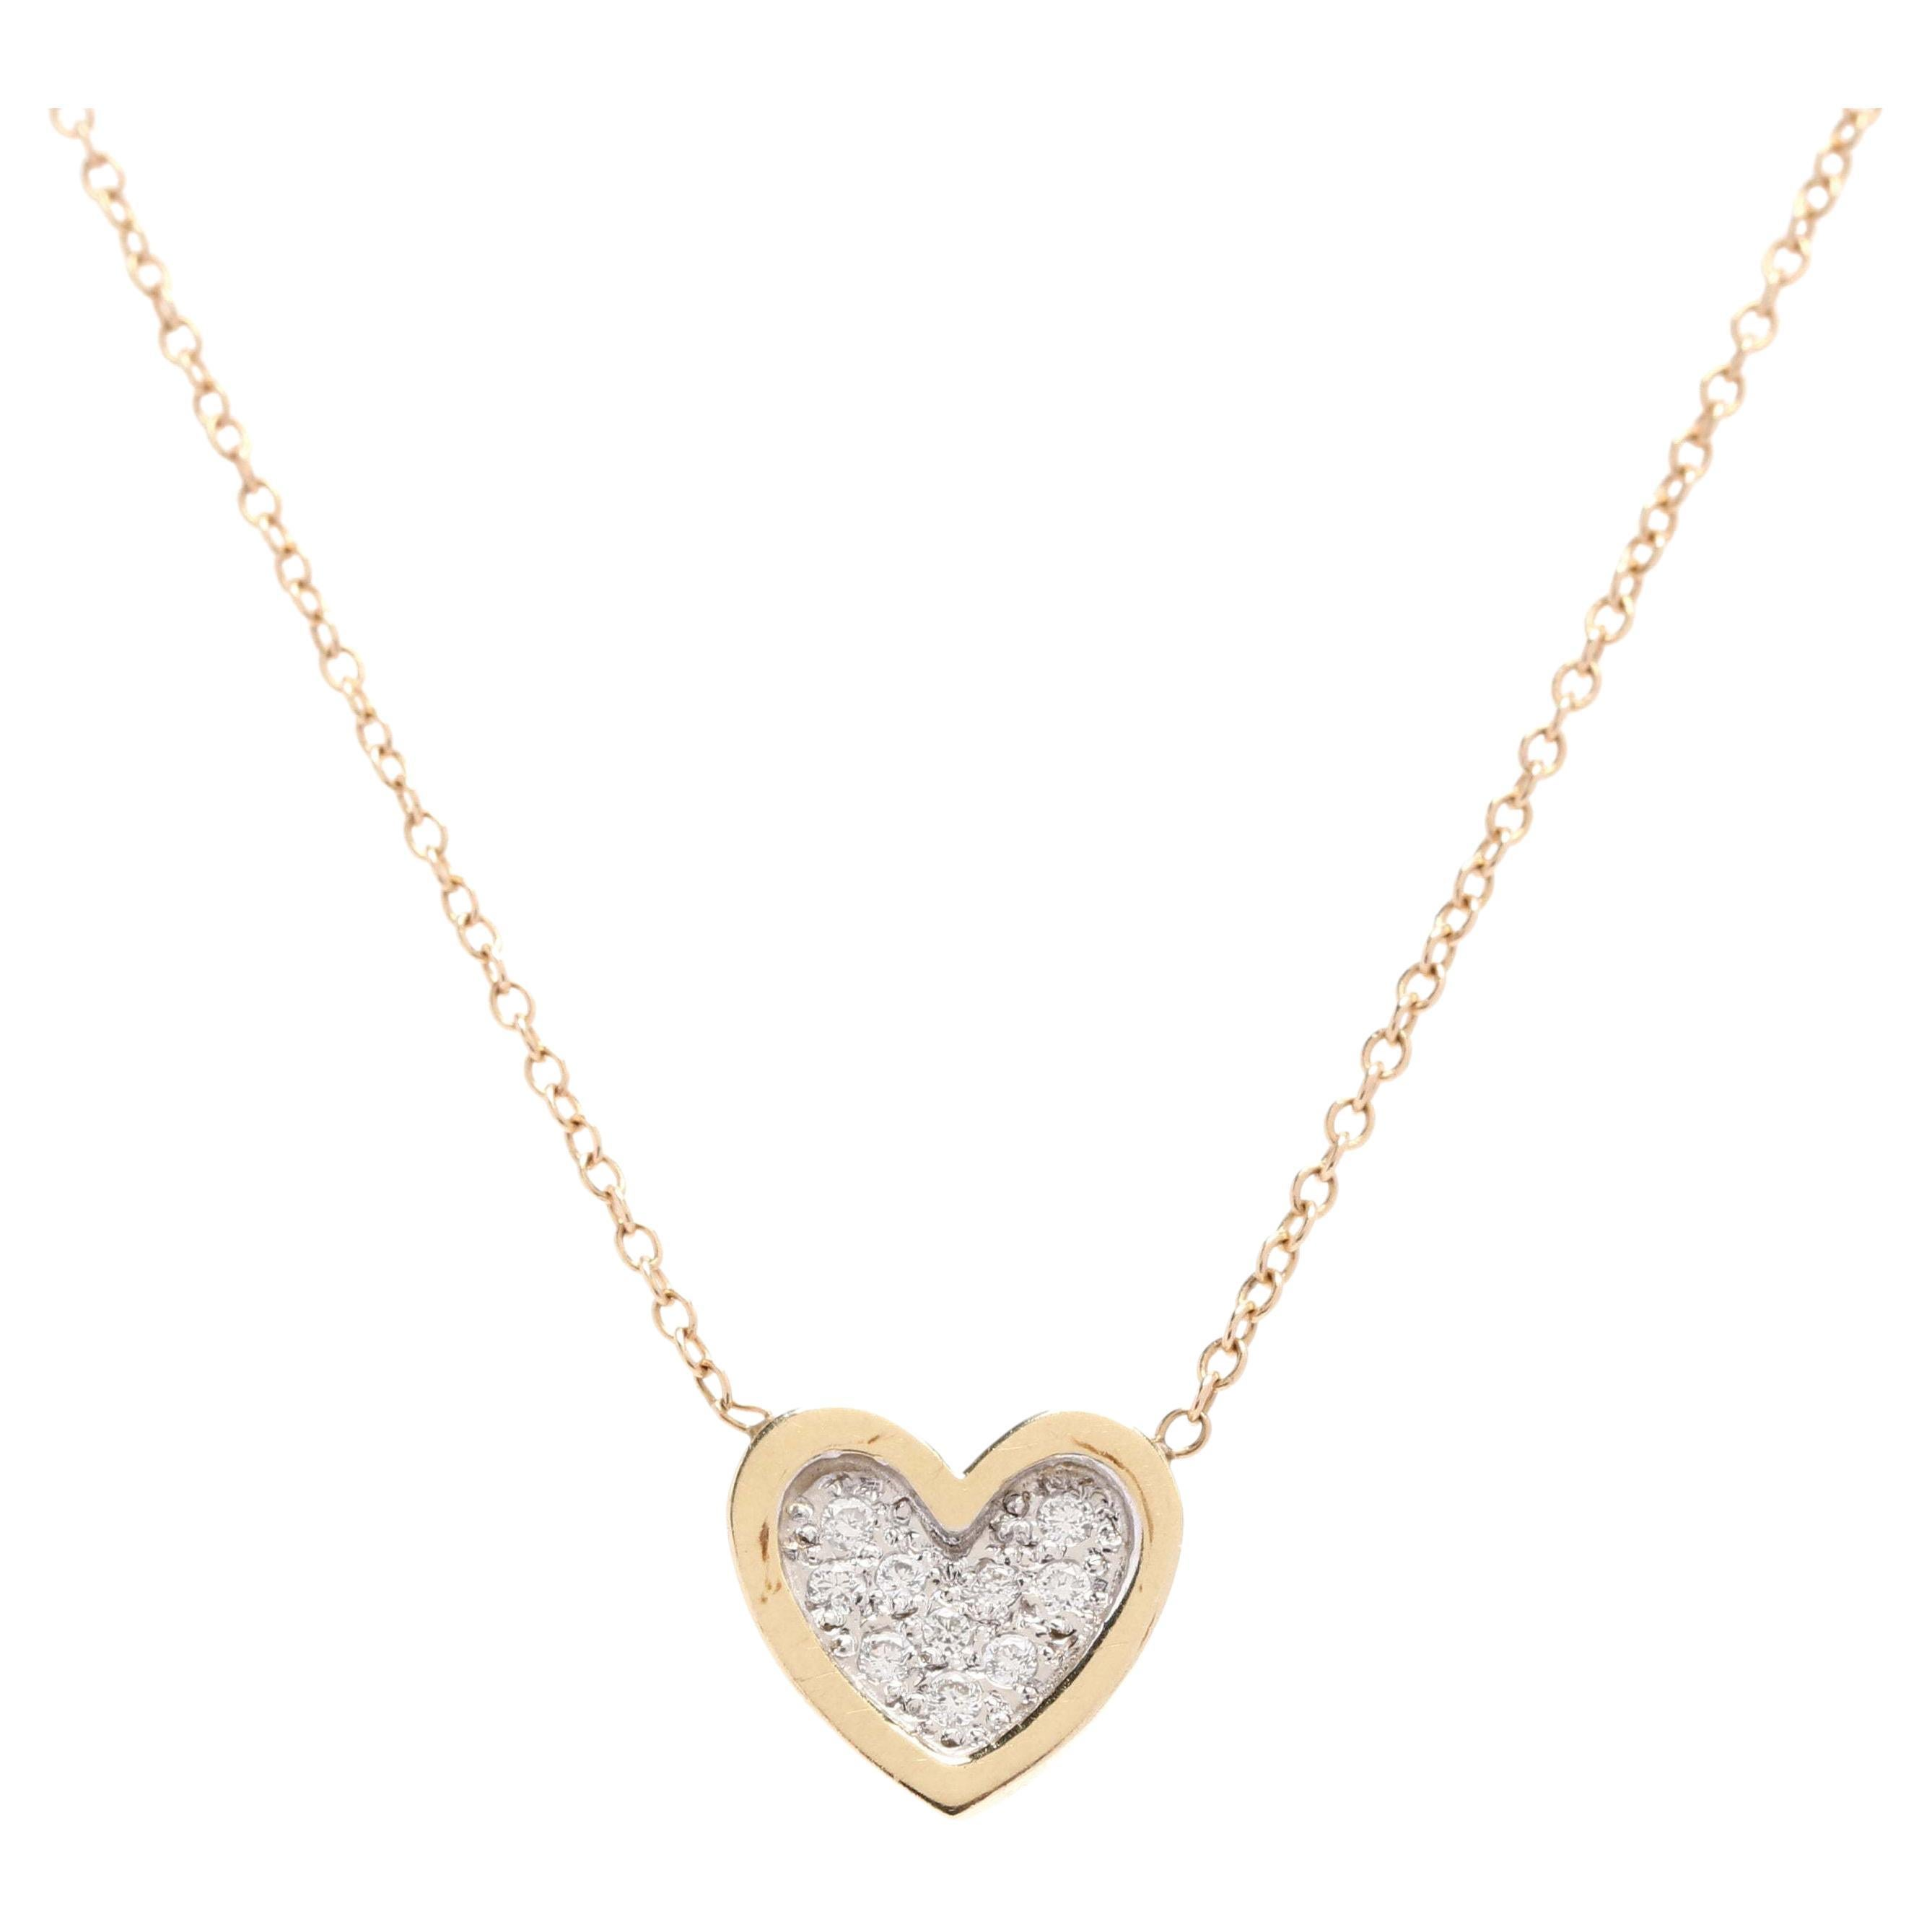 14Kt Yellow and White Gold Diamond Heart Pendant Necklace